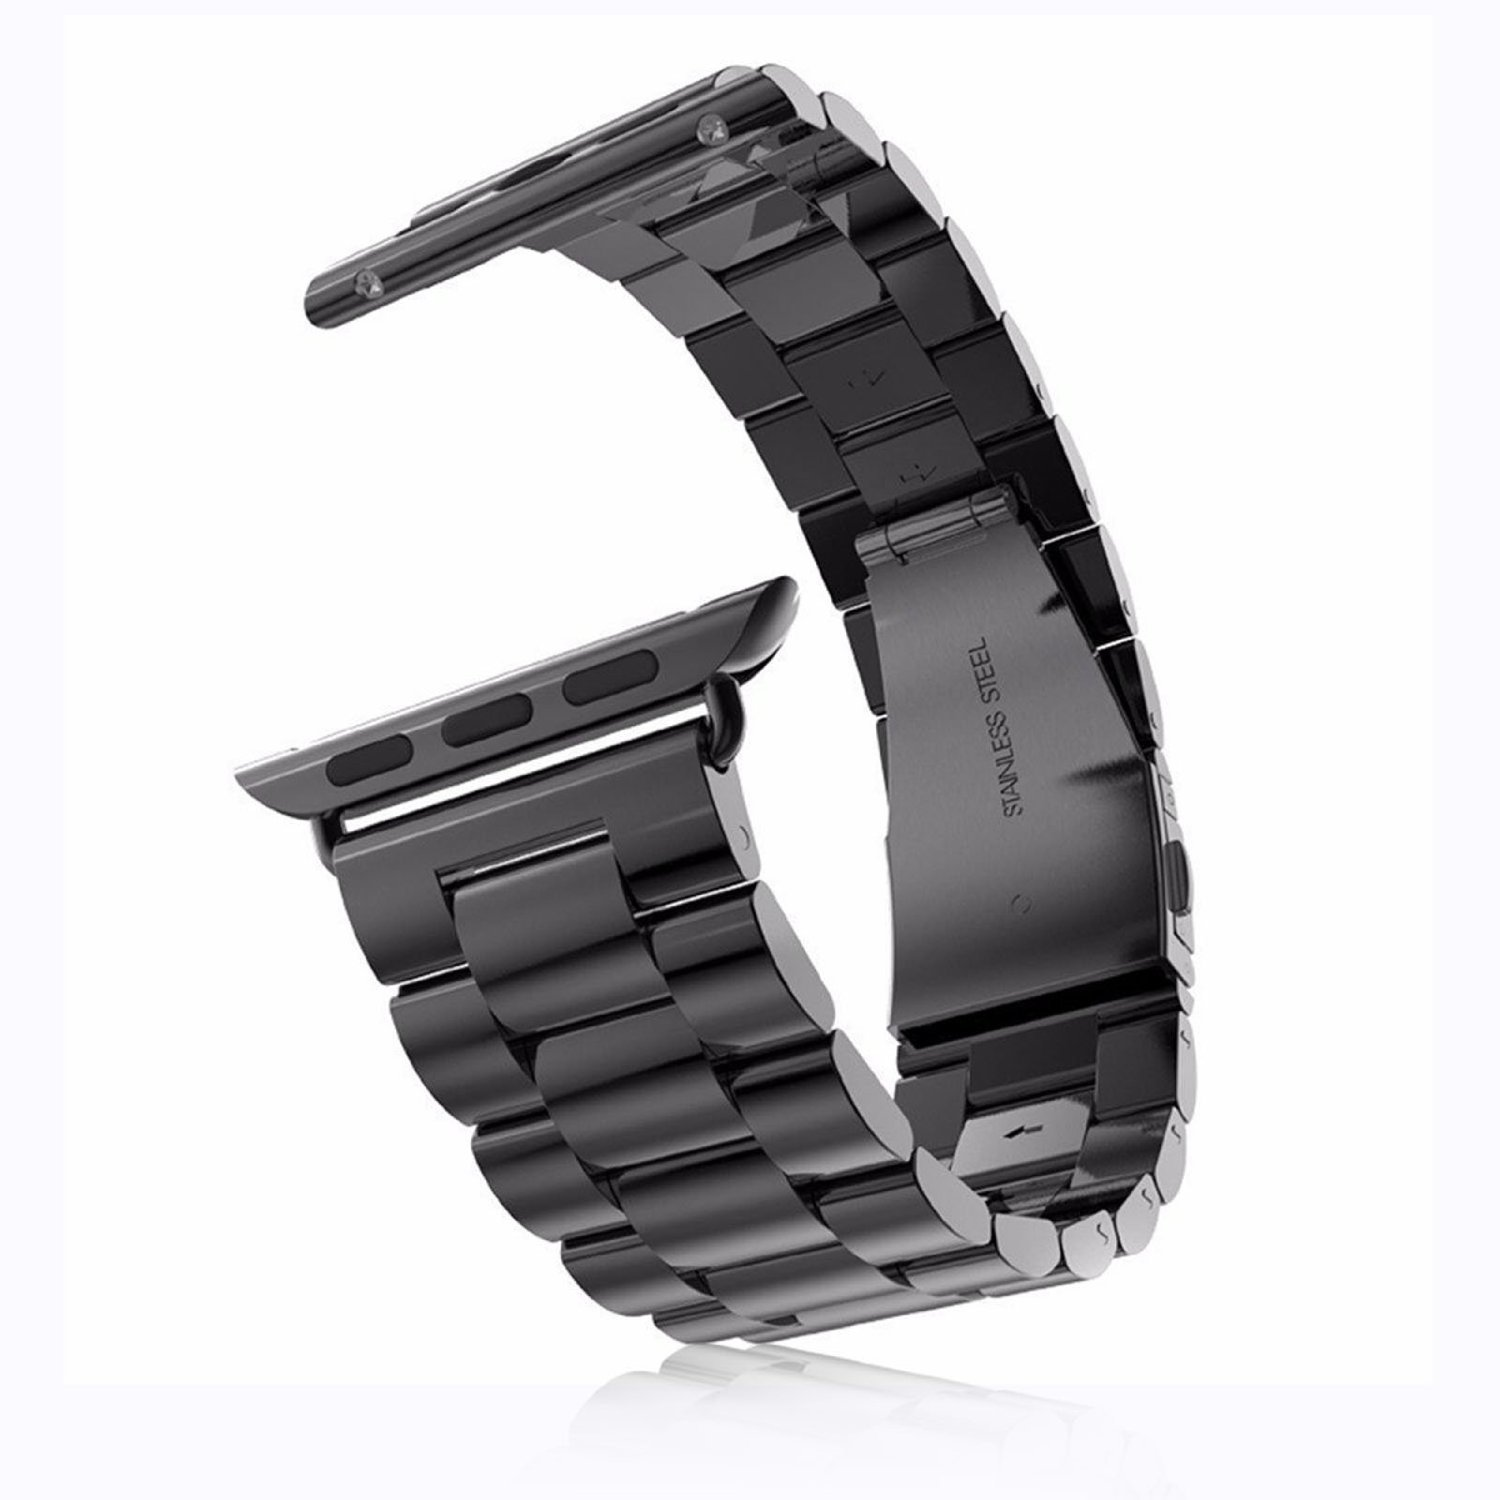 Leefrei Stainless Steel Replacement Strap Watch Band for 42mm Apple Watch Series 3 Series 2 and Series 1 - Black by Leefrei (Image #5)